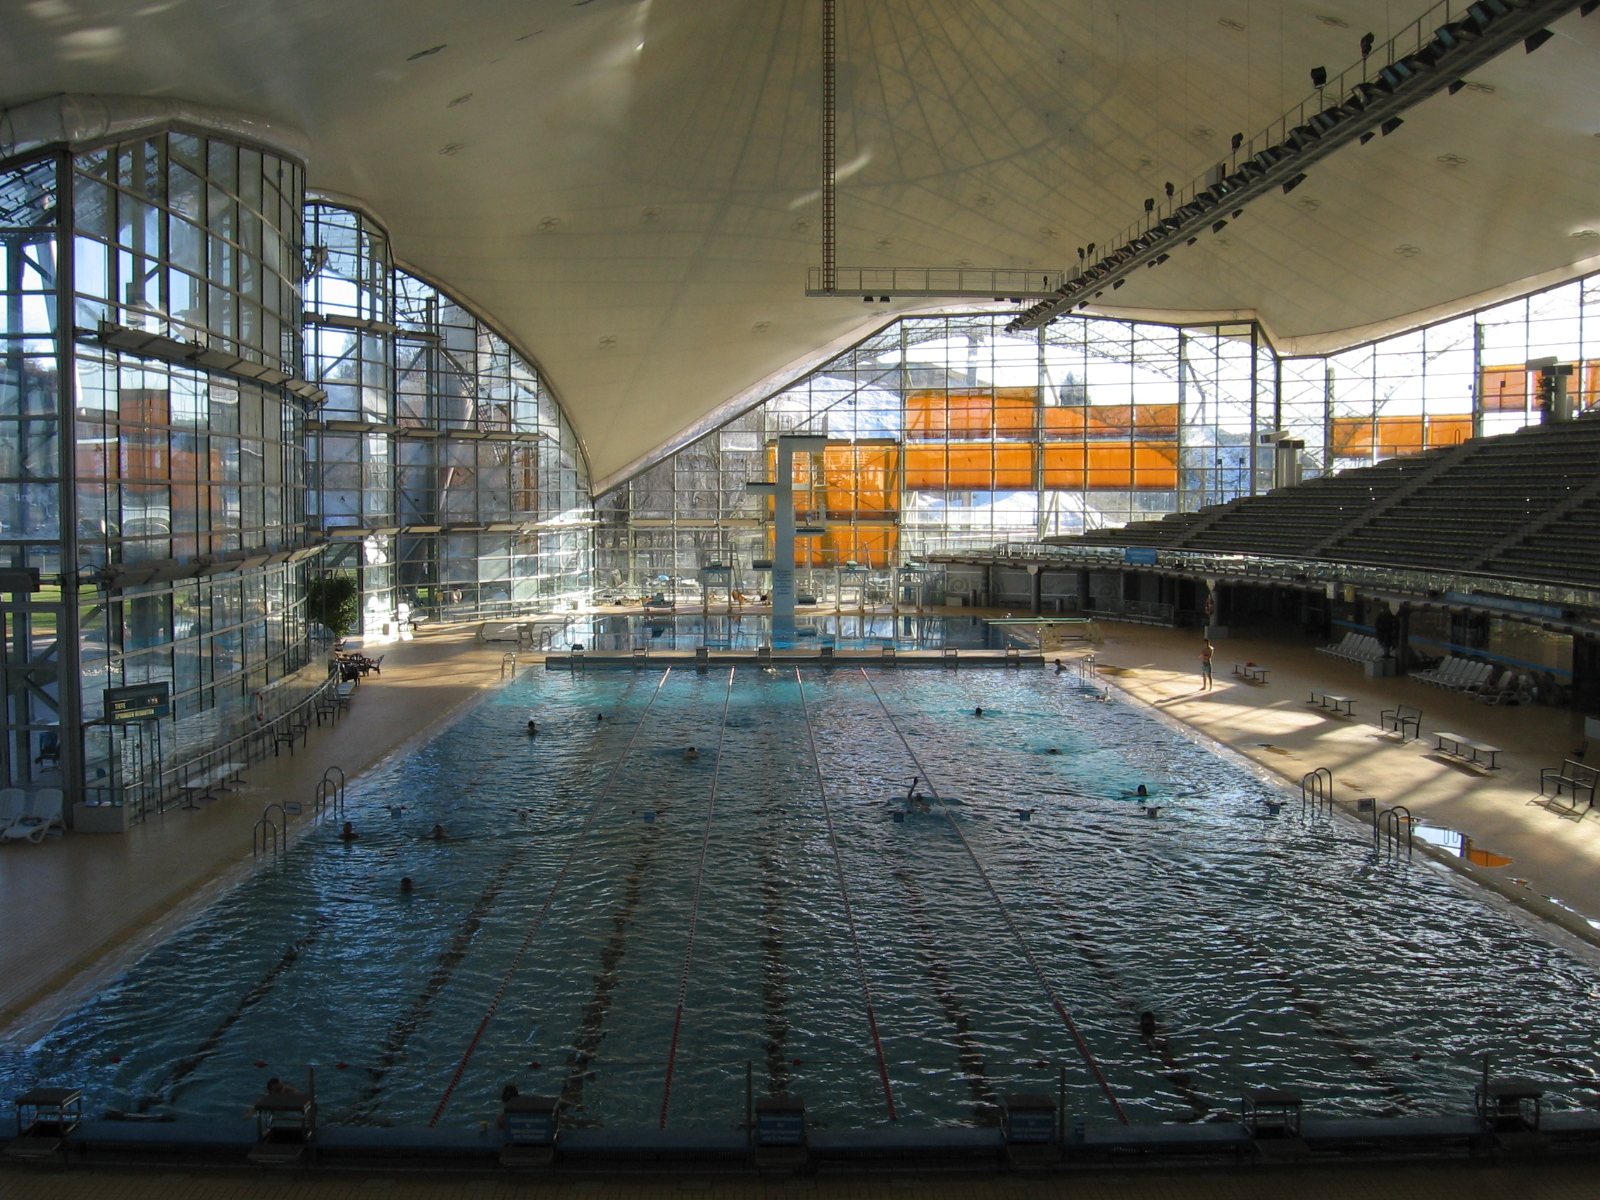 Olympic Swimming Pool 2017 munich online travel guide 2017: munich: olympic swimming pool